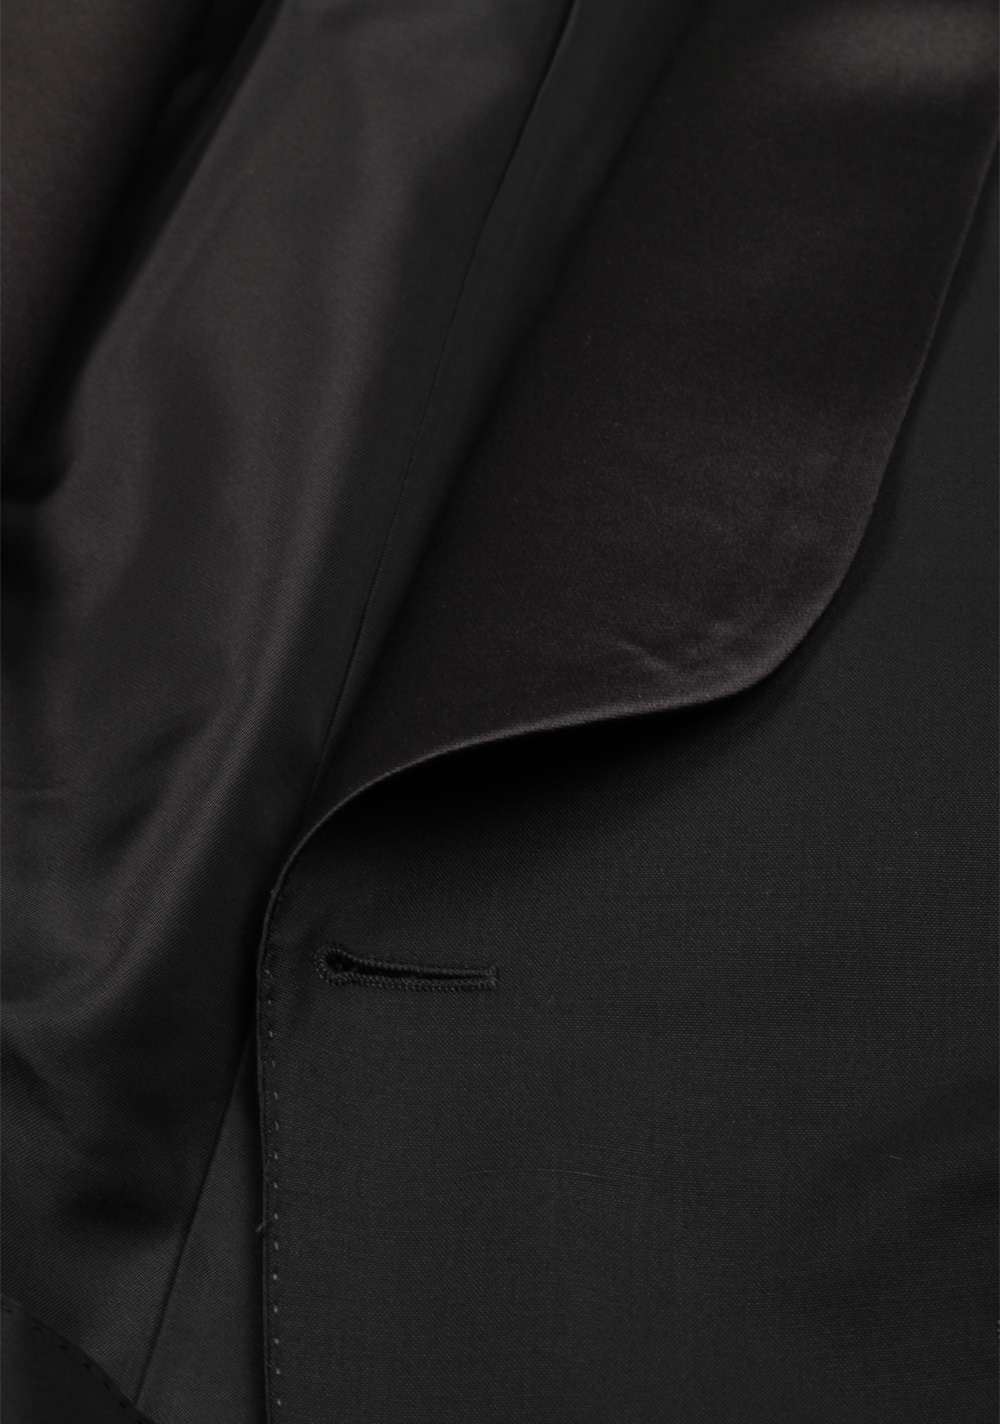 TOM FORD O'Connor Black Shawl Collar Tuxedo Suit Size 56 / 46R Fit Y | Costume Limité